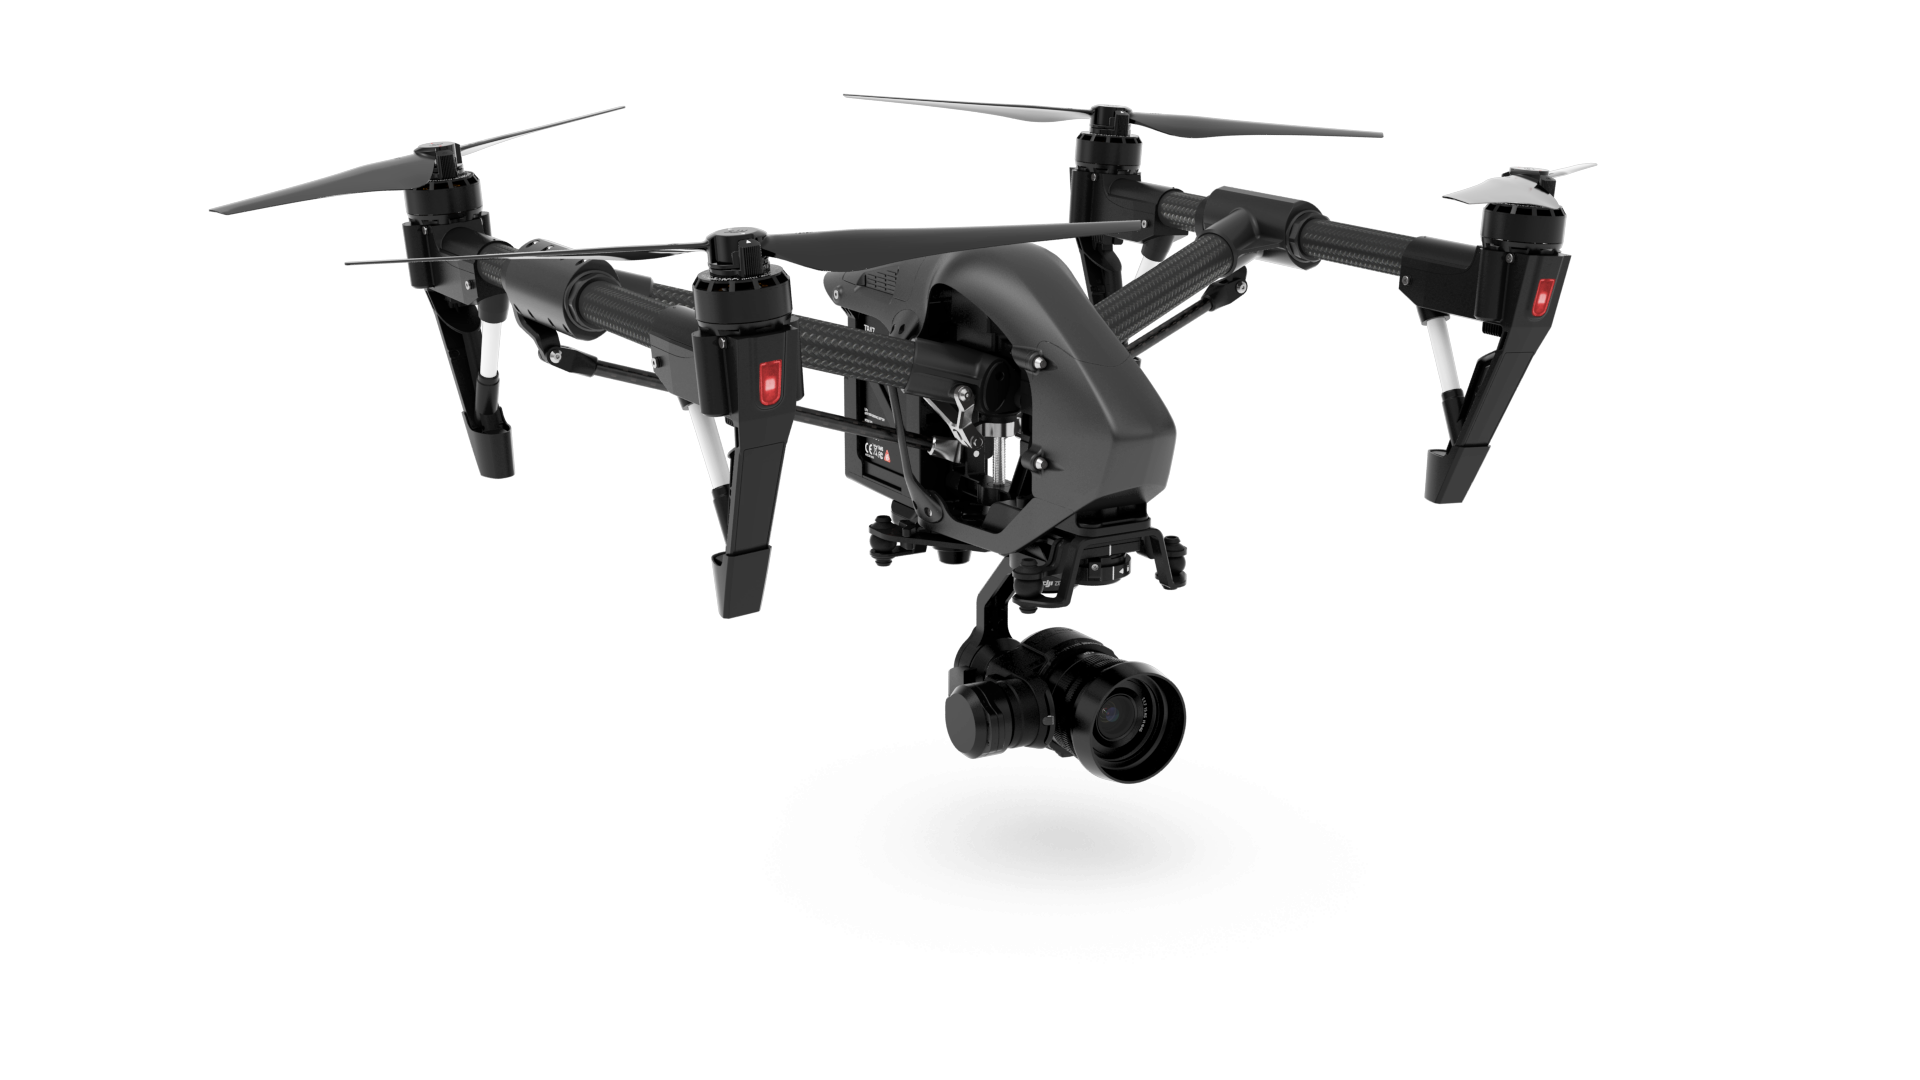 verizon drone with Arrest Drone Stops Match on Iranian Koker 1 Vtol Drone Faked Images together with Lockheed Continues Flight Testing T X Trainer Offering besides Beautiful Women Wallpapers furthermore This Is The Lg G5 Smaller Battery Smaller Screen Metal Body Vr And Drone Accessories also Apple Watch Series 3 Lte Doesnt Hidden Fee.